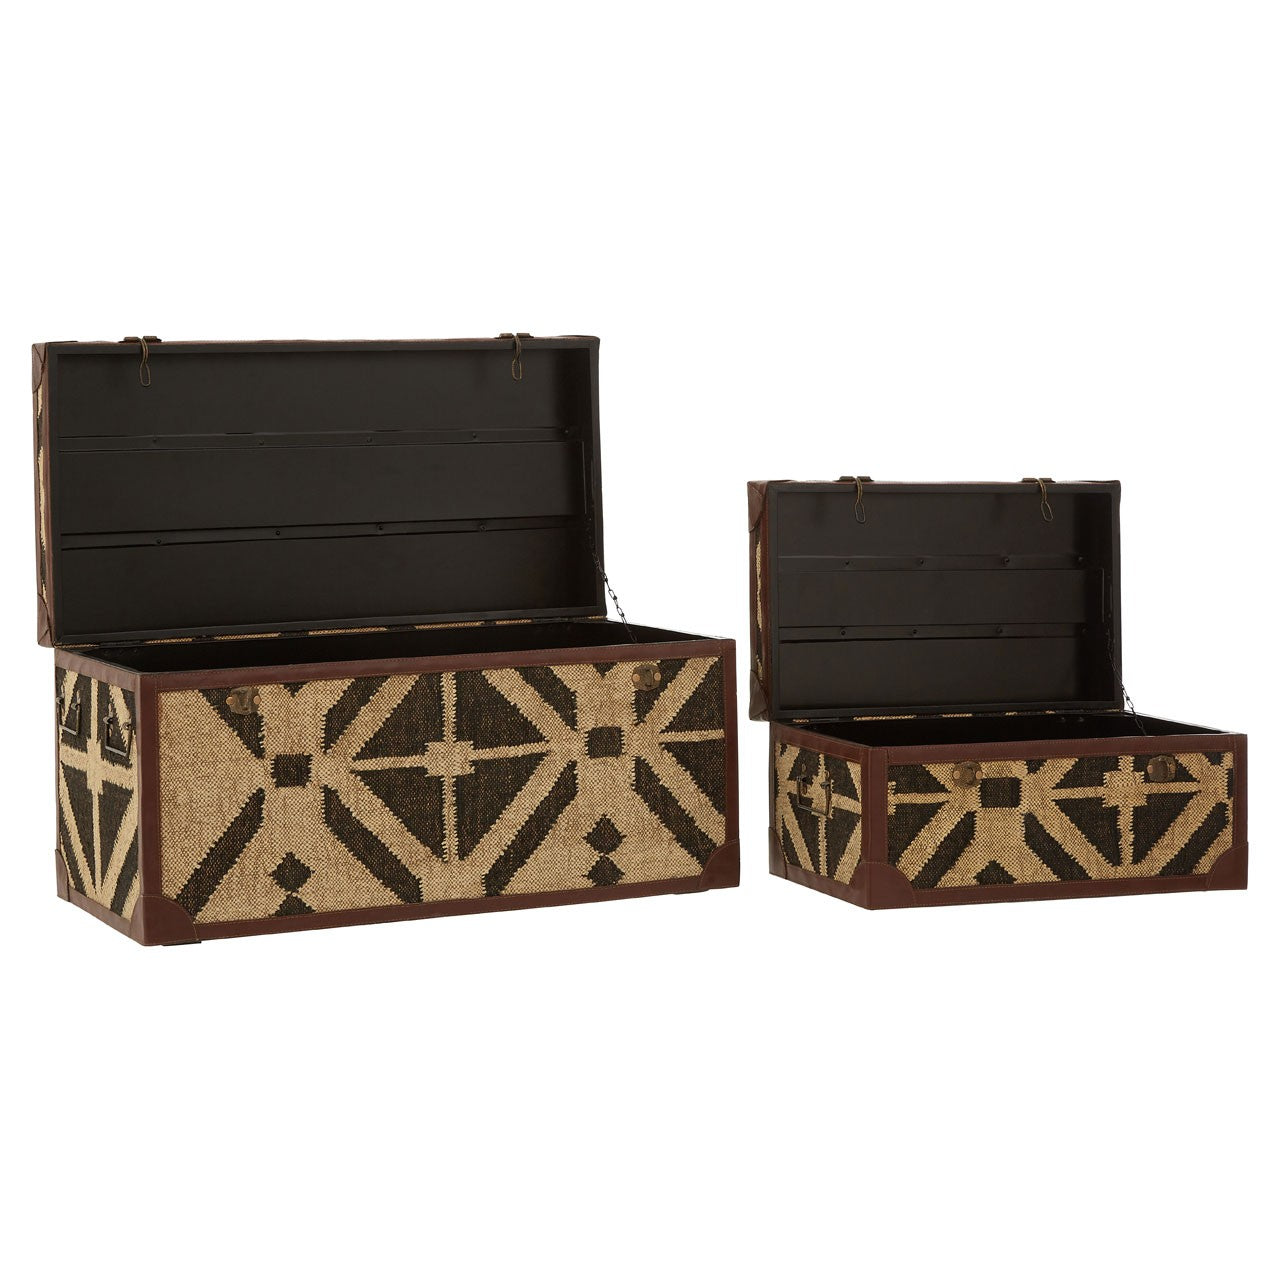 Aztec Storage Trunks (Set Of 2) - Open